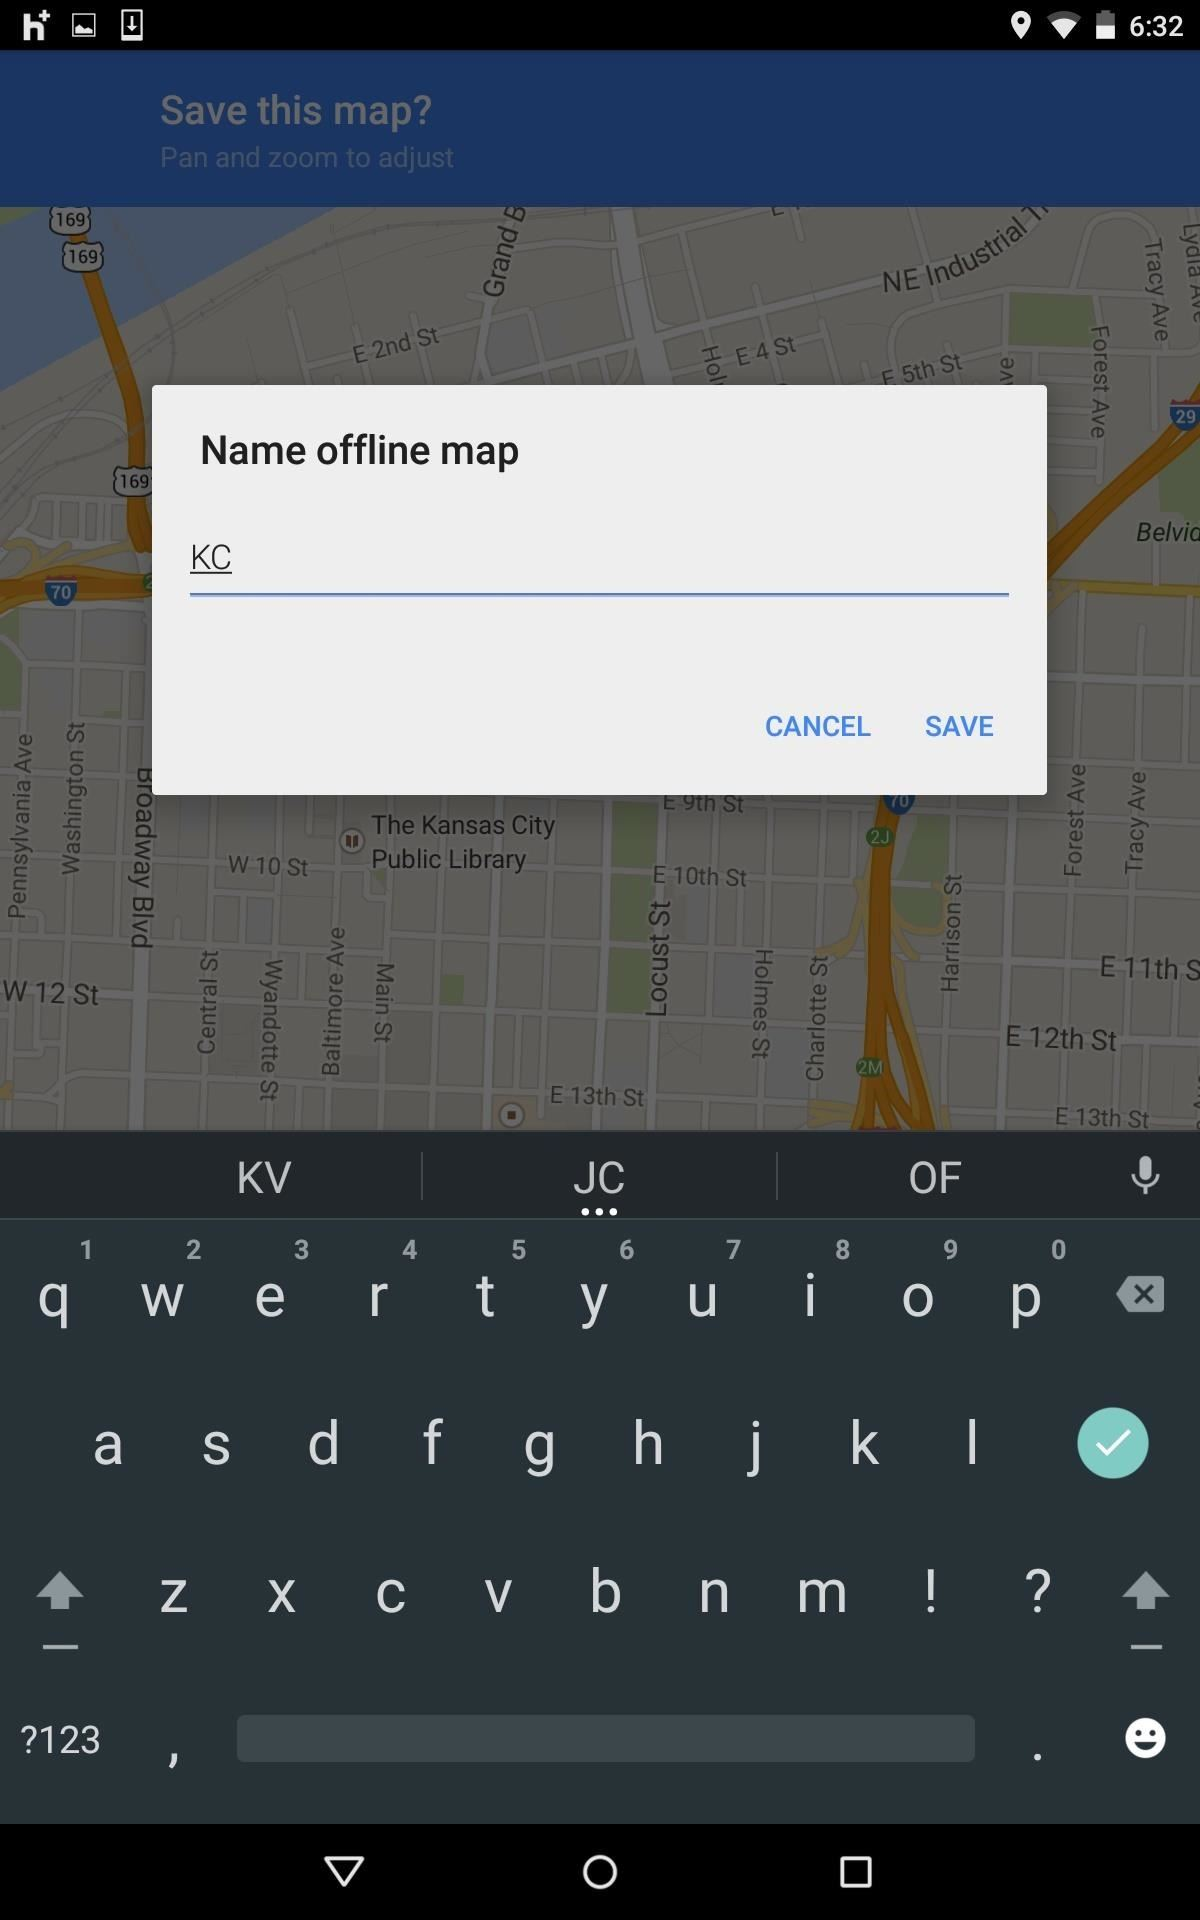 save-locations-google-maps-for-offline-use.w1456 Saved Maps On Google on on apple maps, home maps, different types of world maps, bing maps, online maps, on world maps,